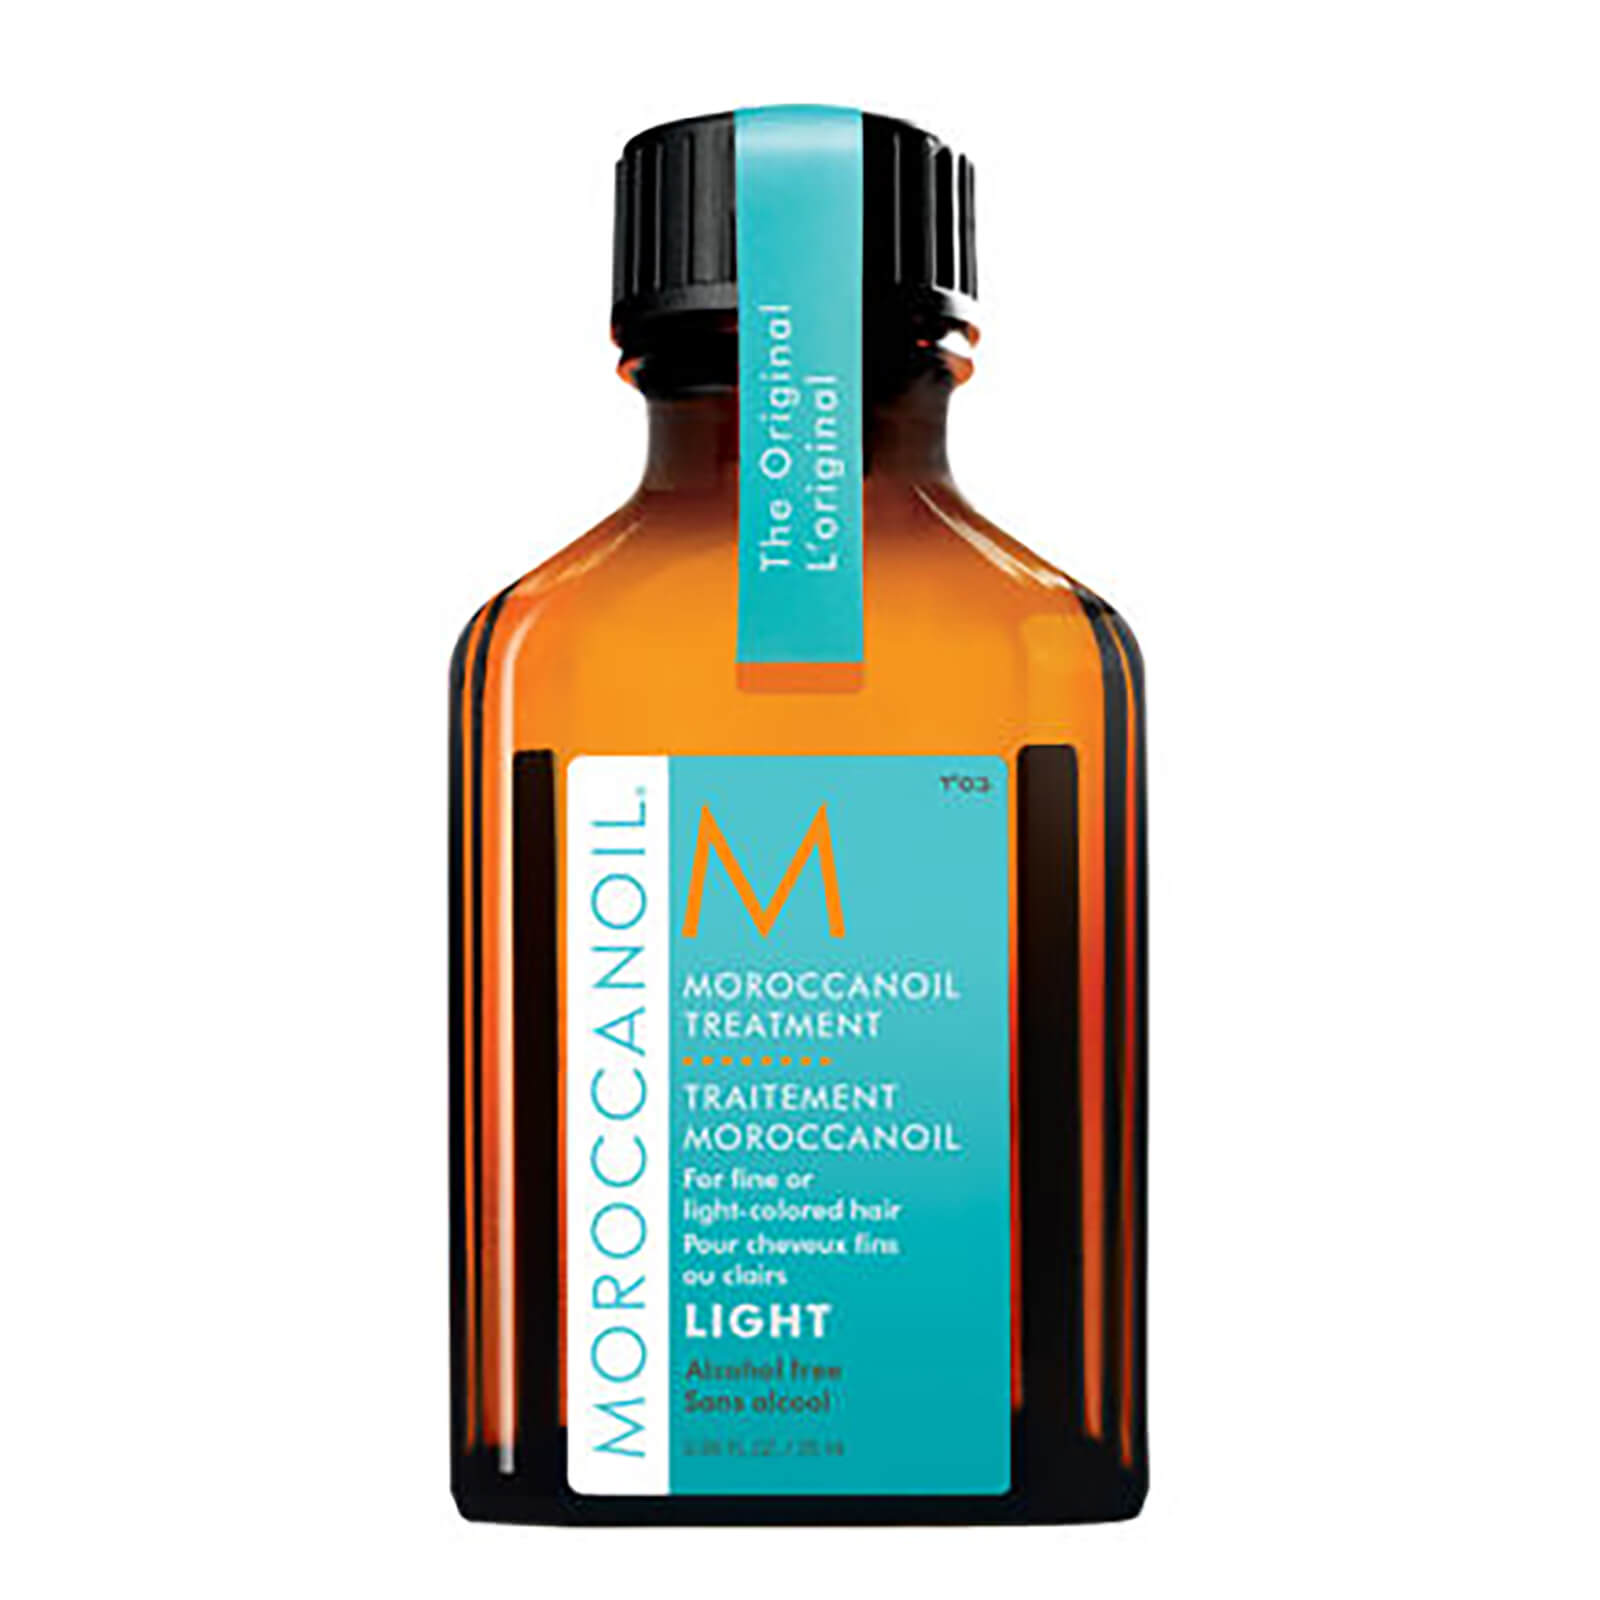 moroccan oil for fine hair reviews